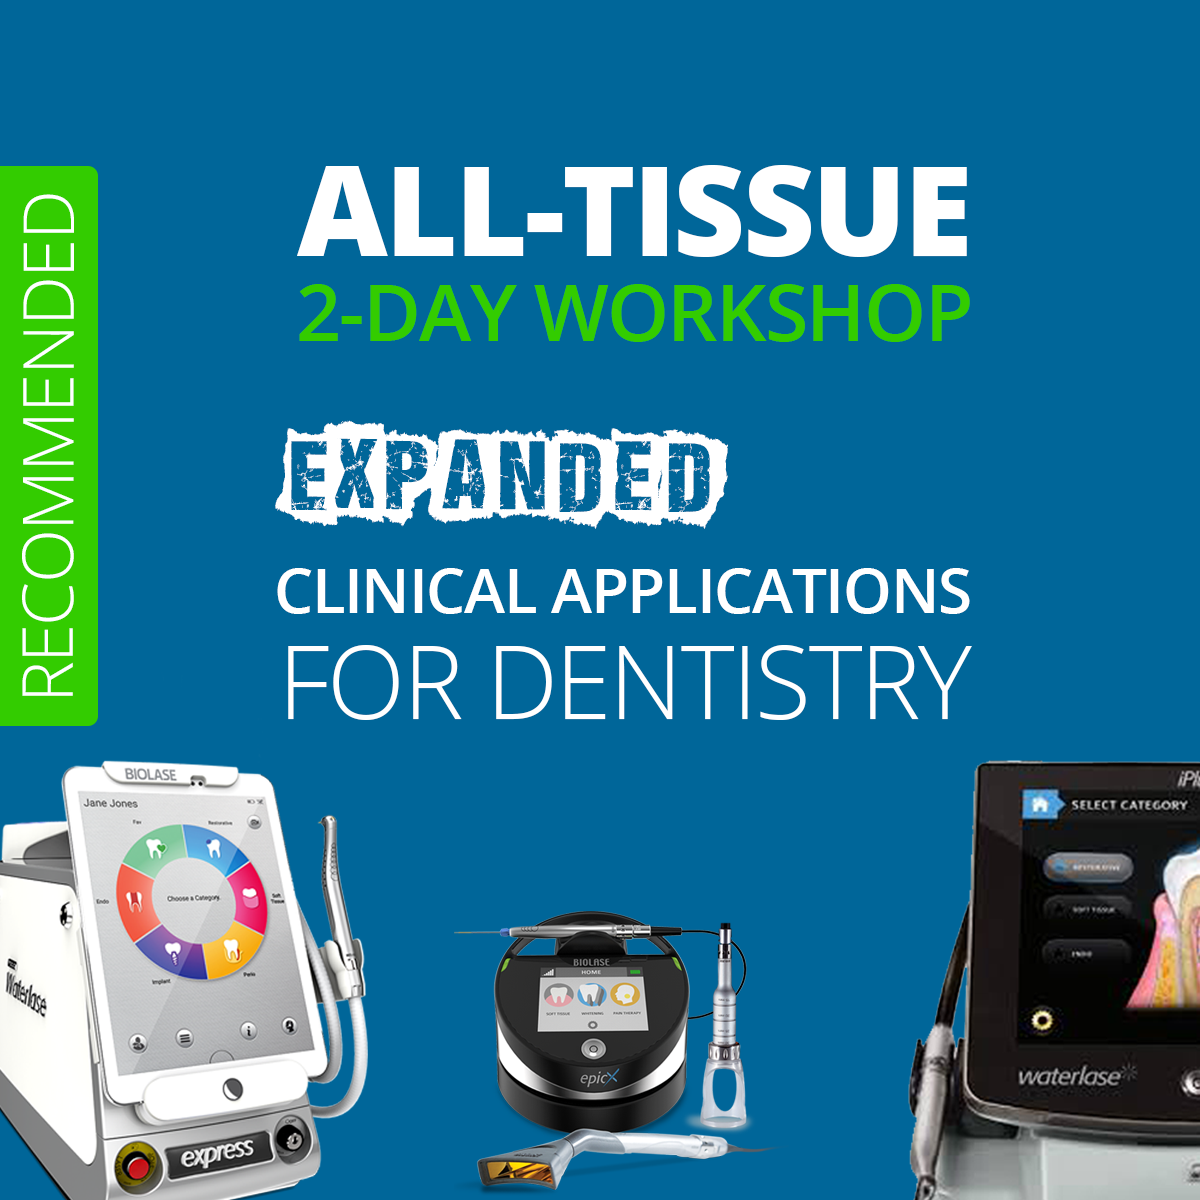 Copenhagen: Clinical Applications in Laser Dentistry  [1 or 2 Days]